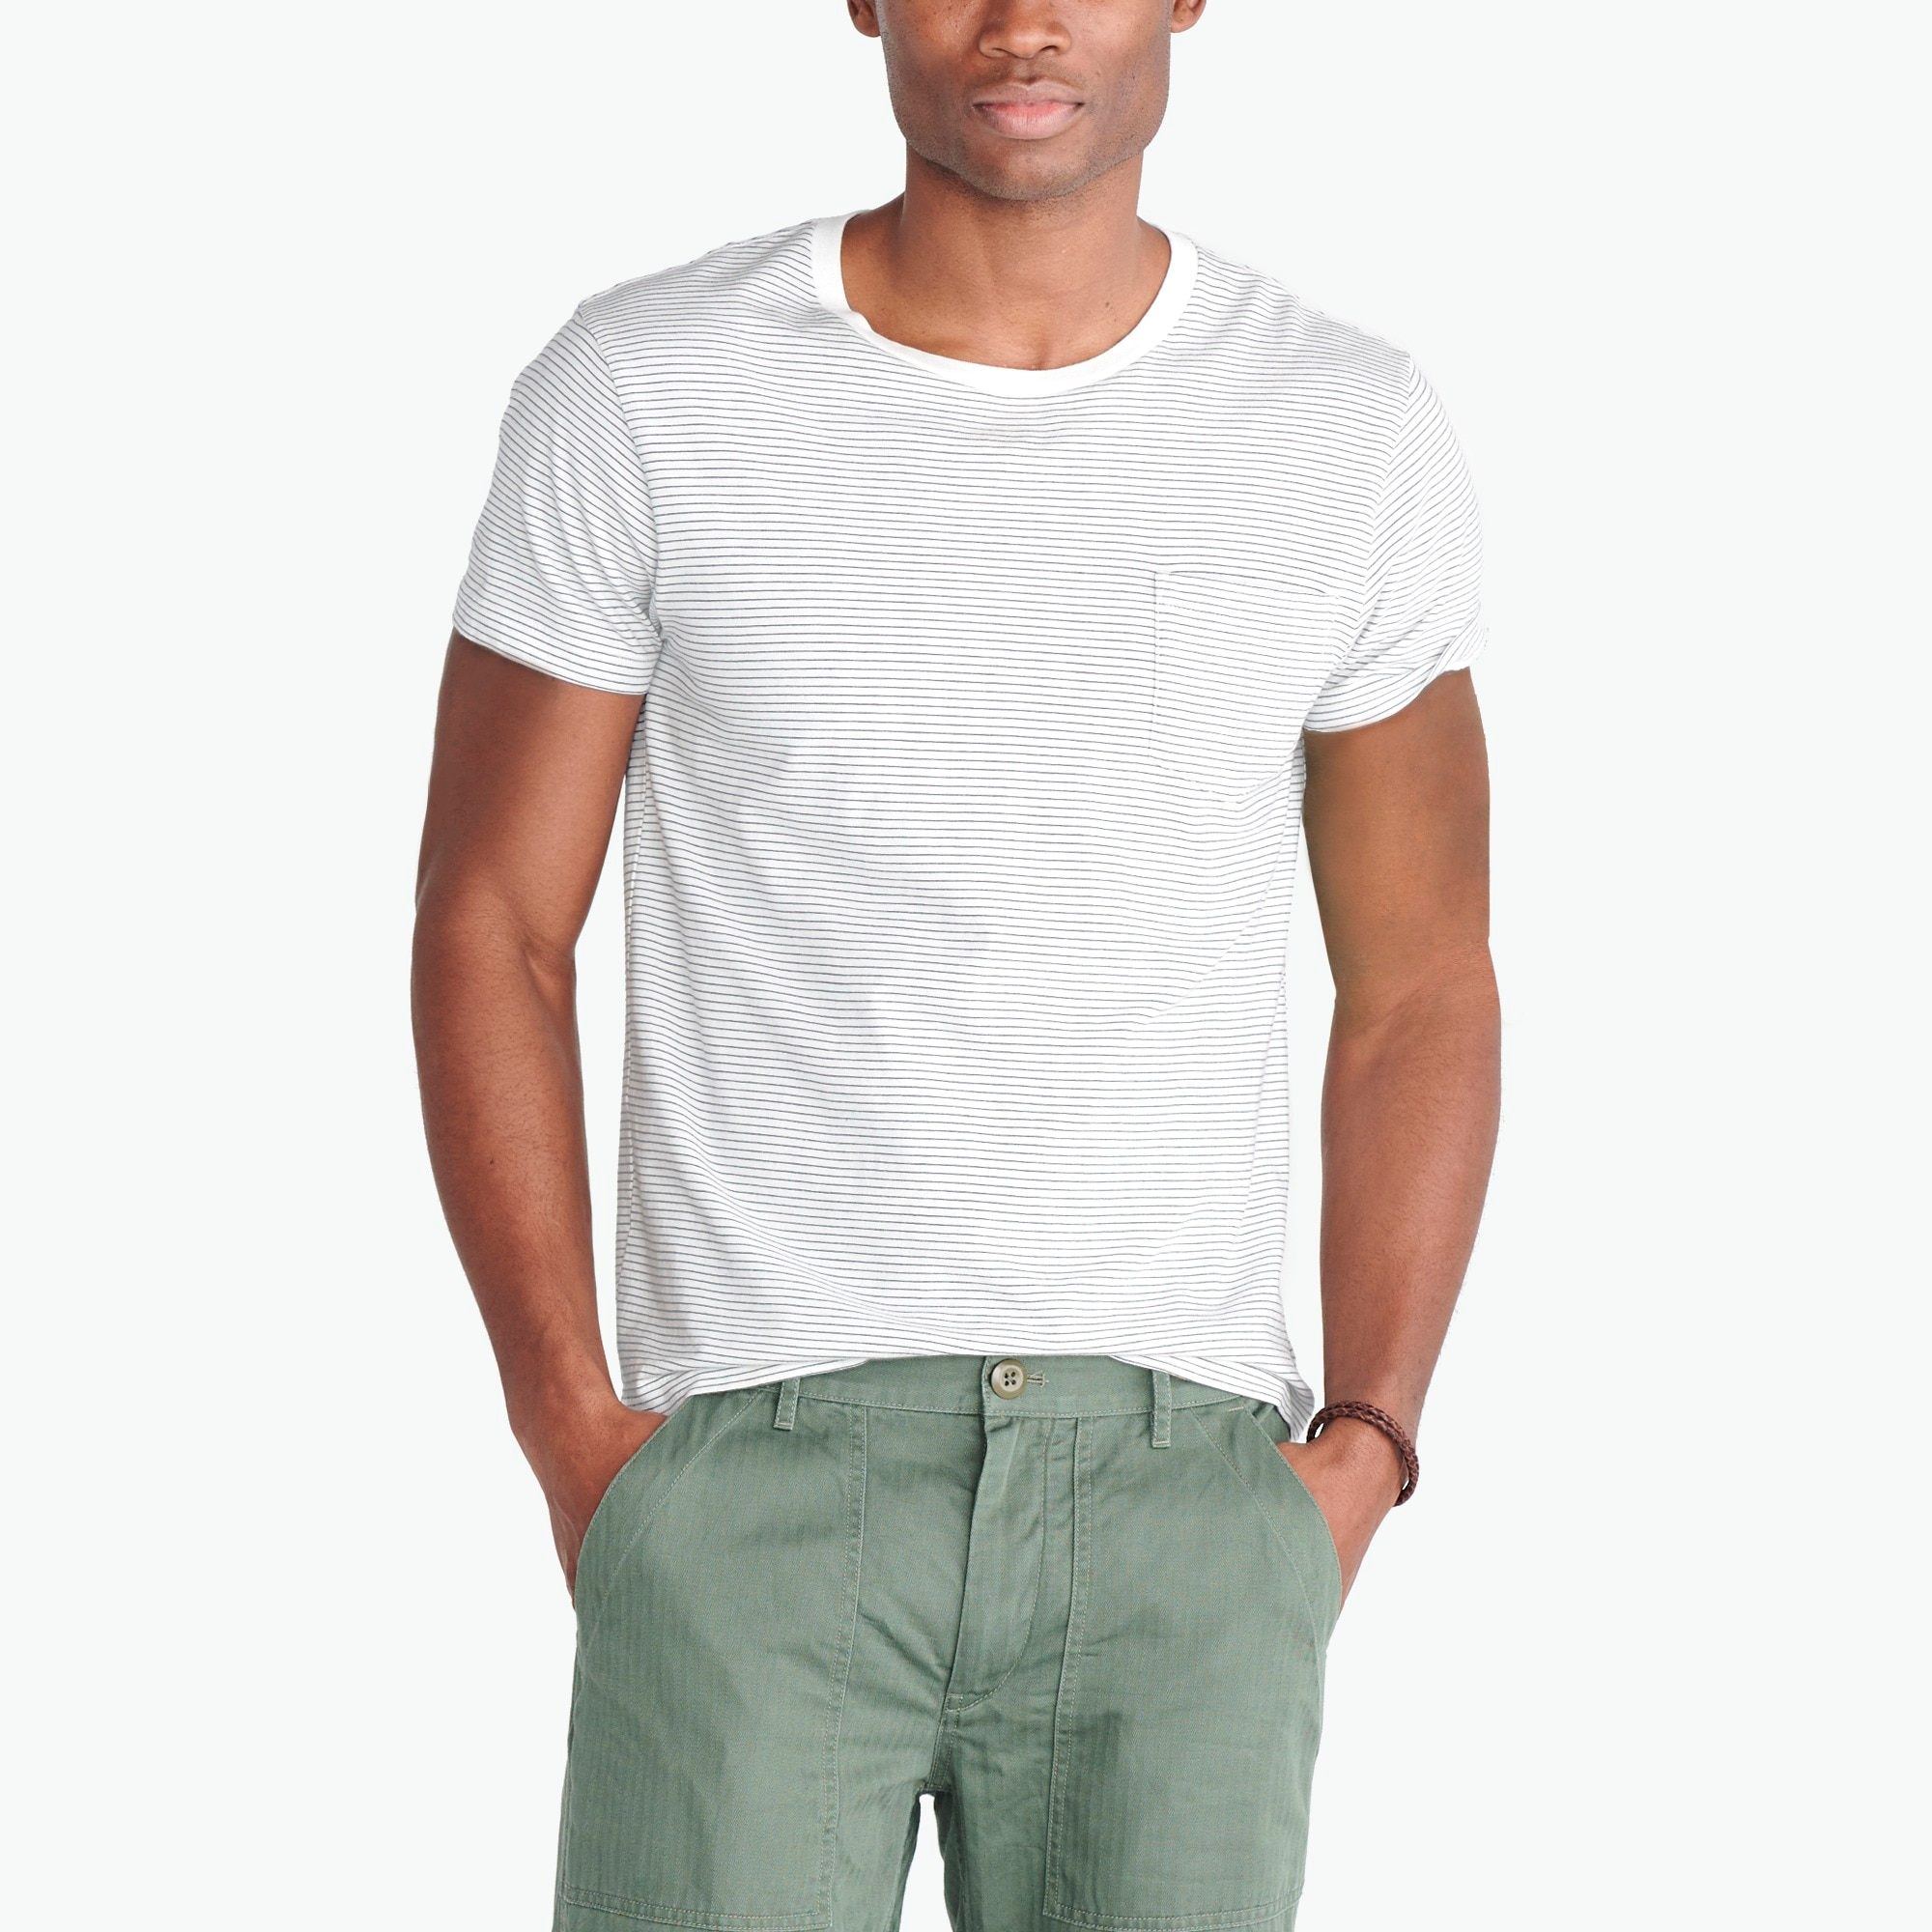 factory mens Broken-in bartlett striped T-shirt